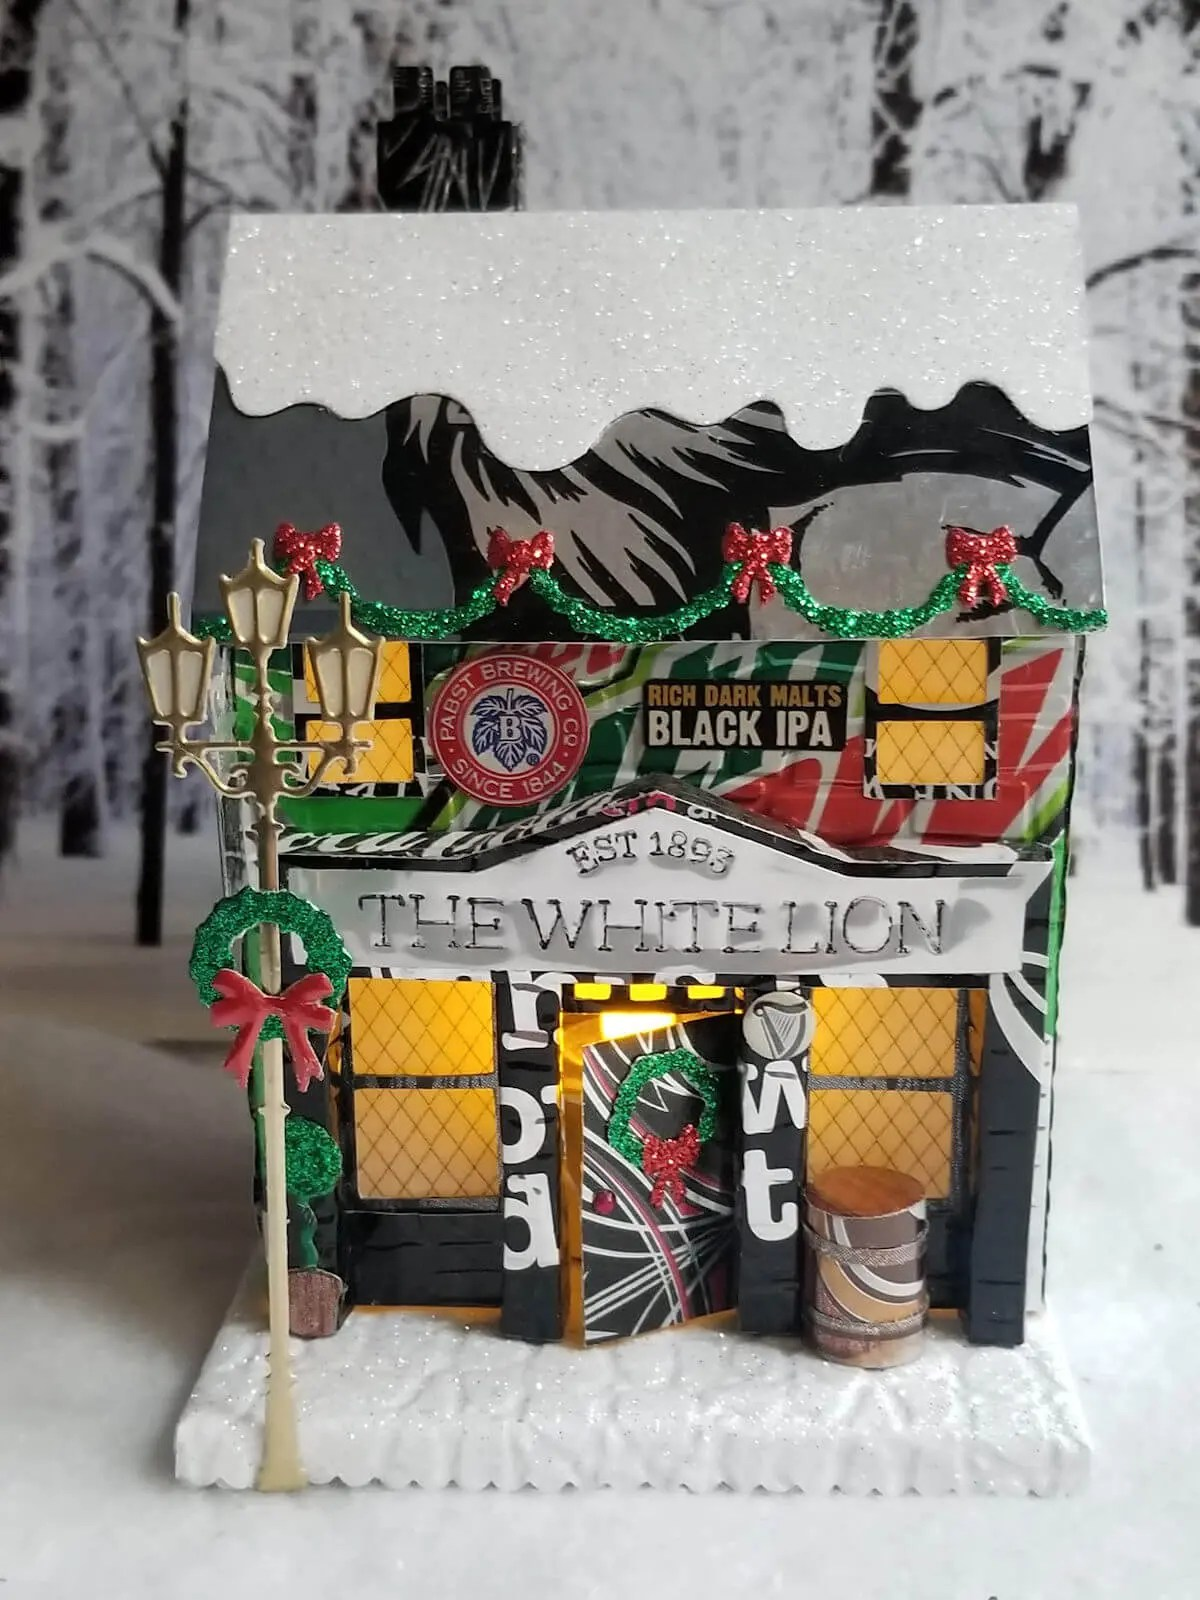 Winter Village Pub #1 aluminum can house